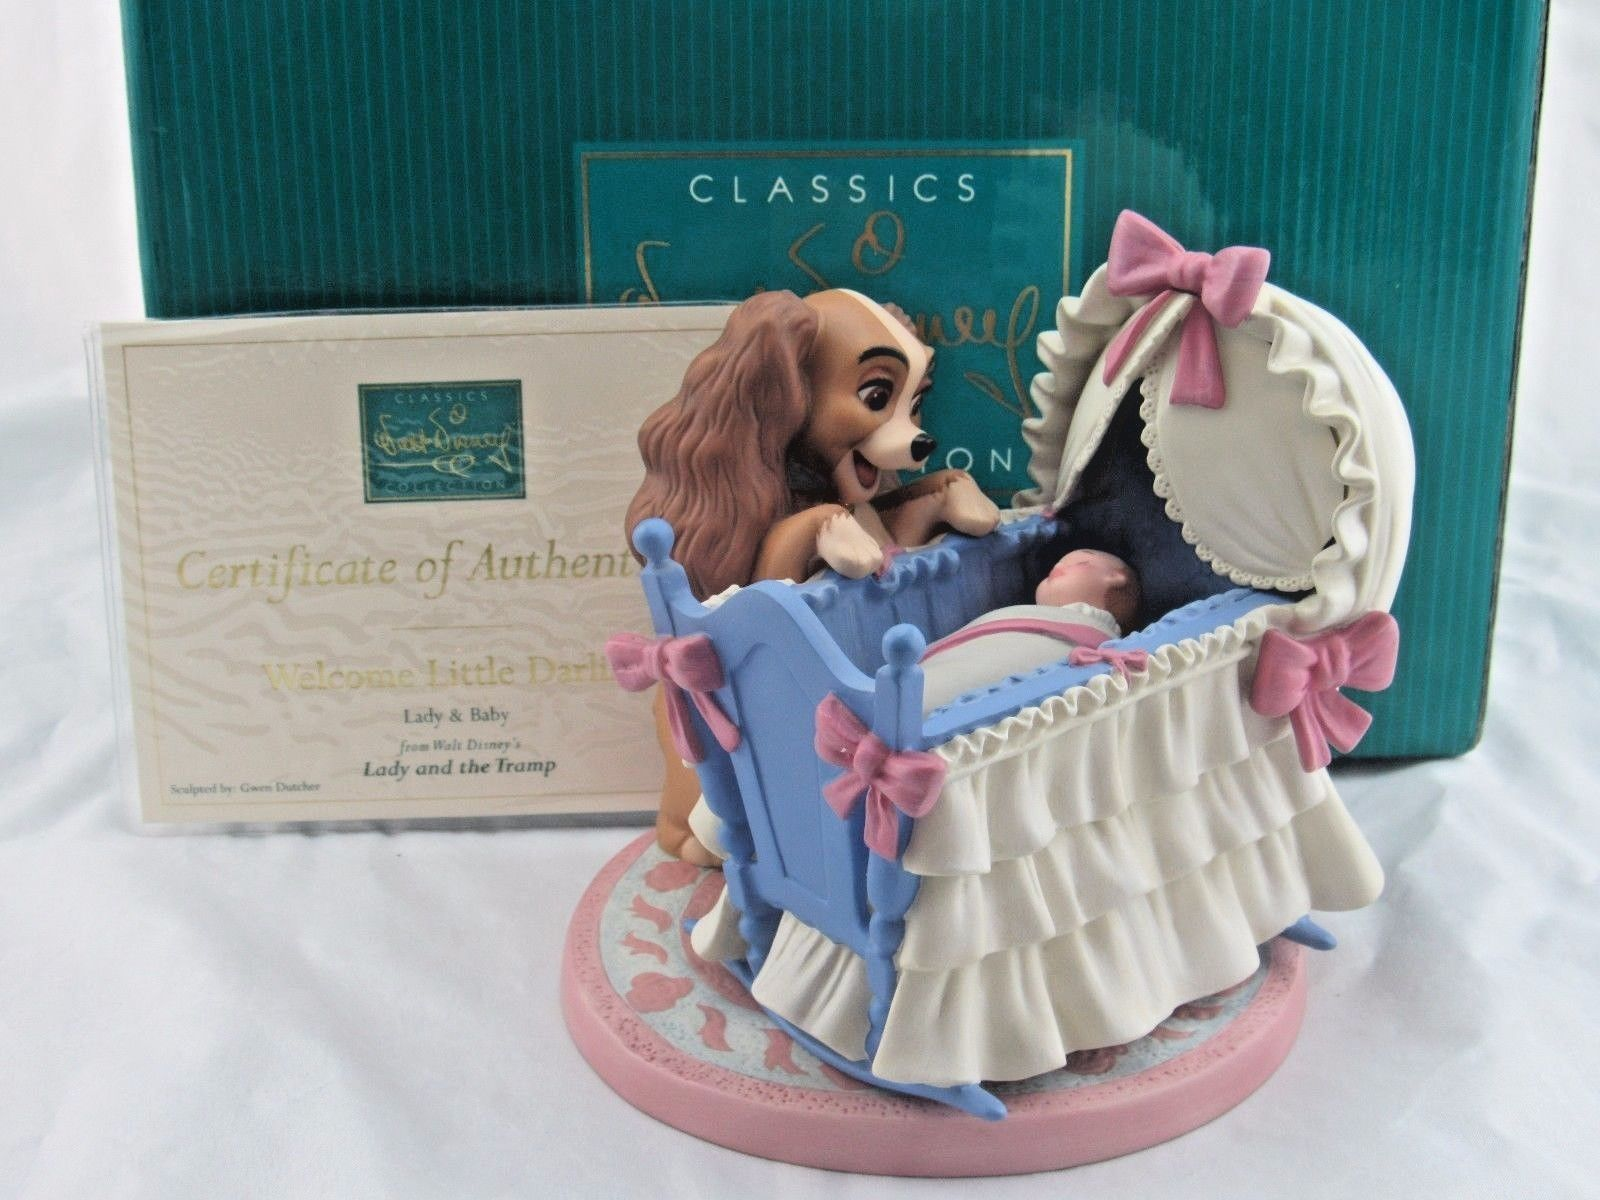 Lady And The Tramp Baby Wdcc Welcome Little Darling Lady Baby From Lady And The Tramp In Lady And The Tramp Disney Figurines Disney Gifts